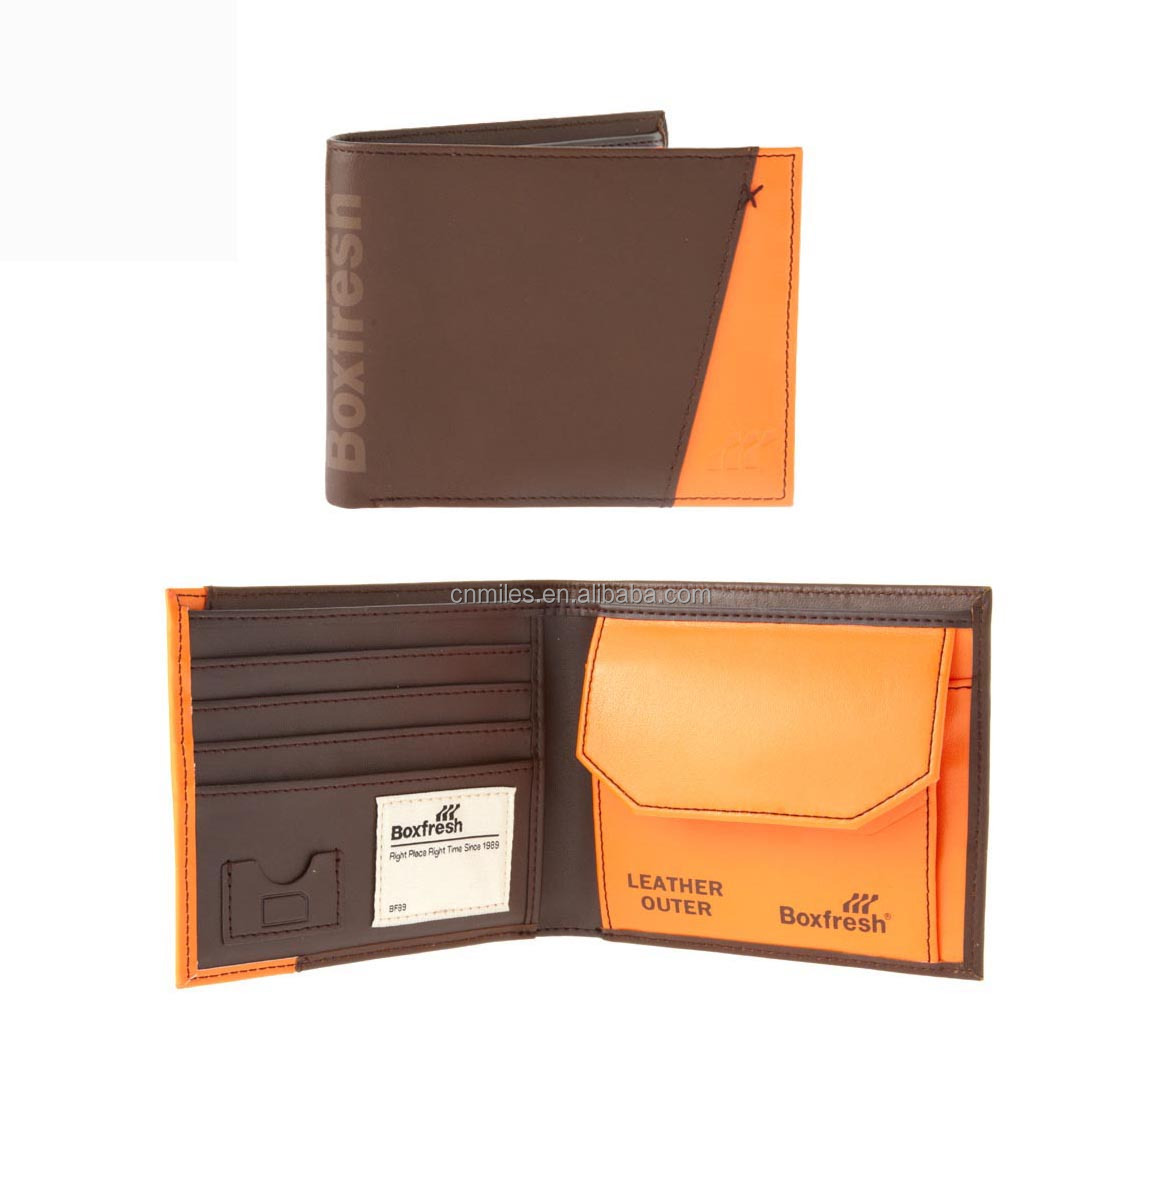 Gents Small Leather Goods  chopardcom